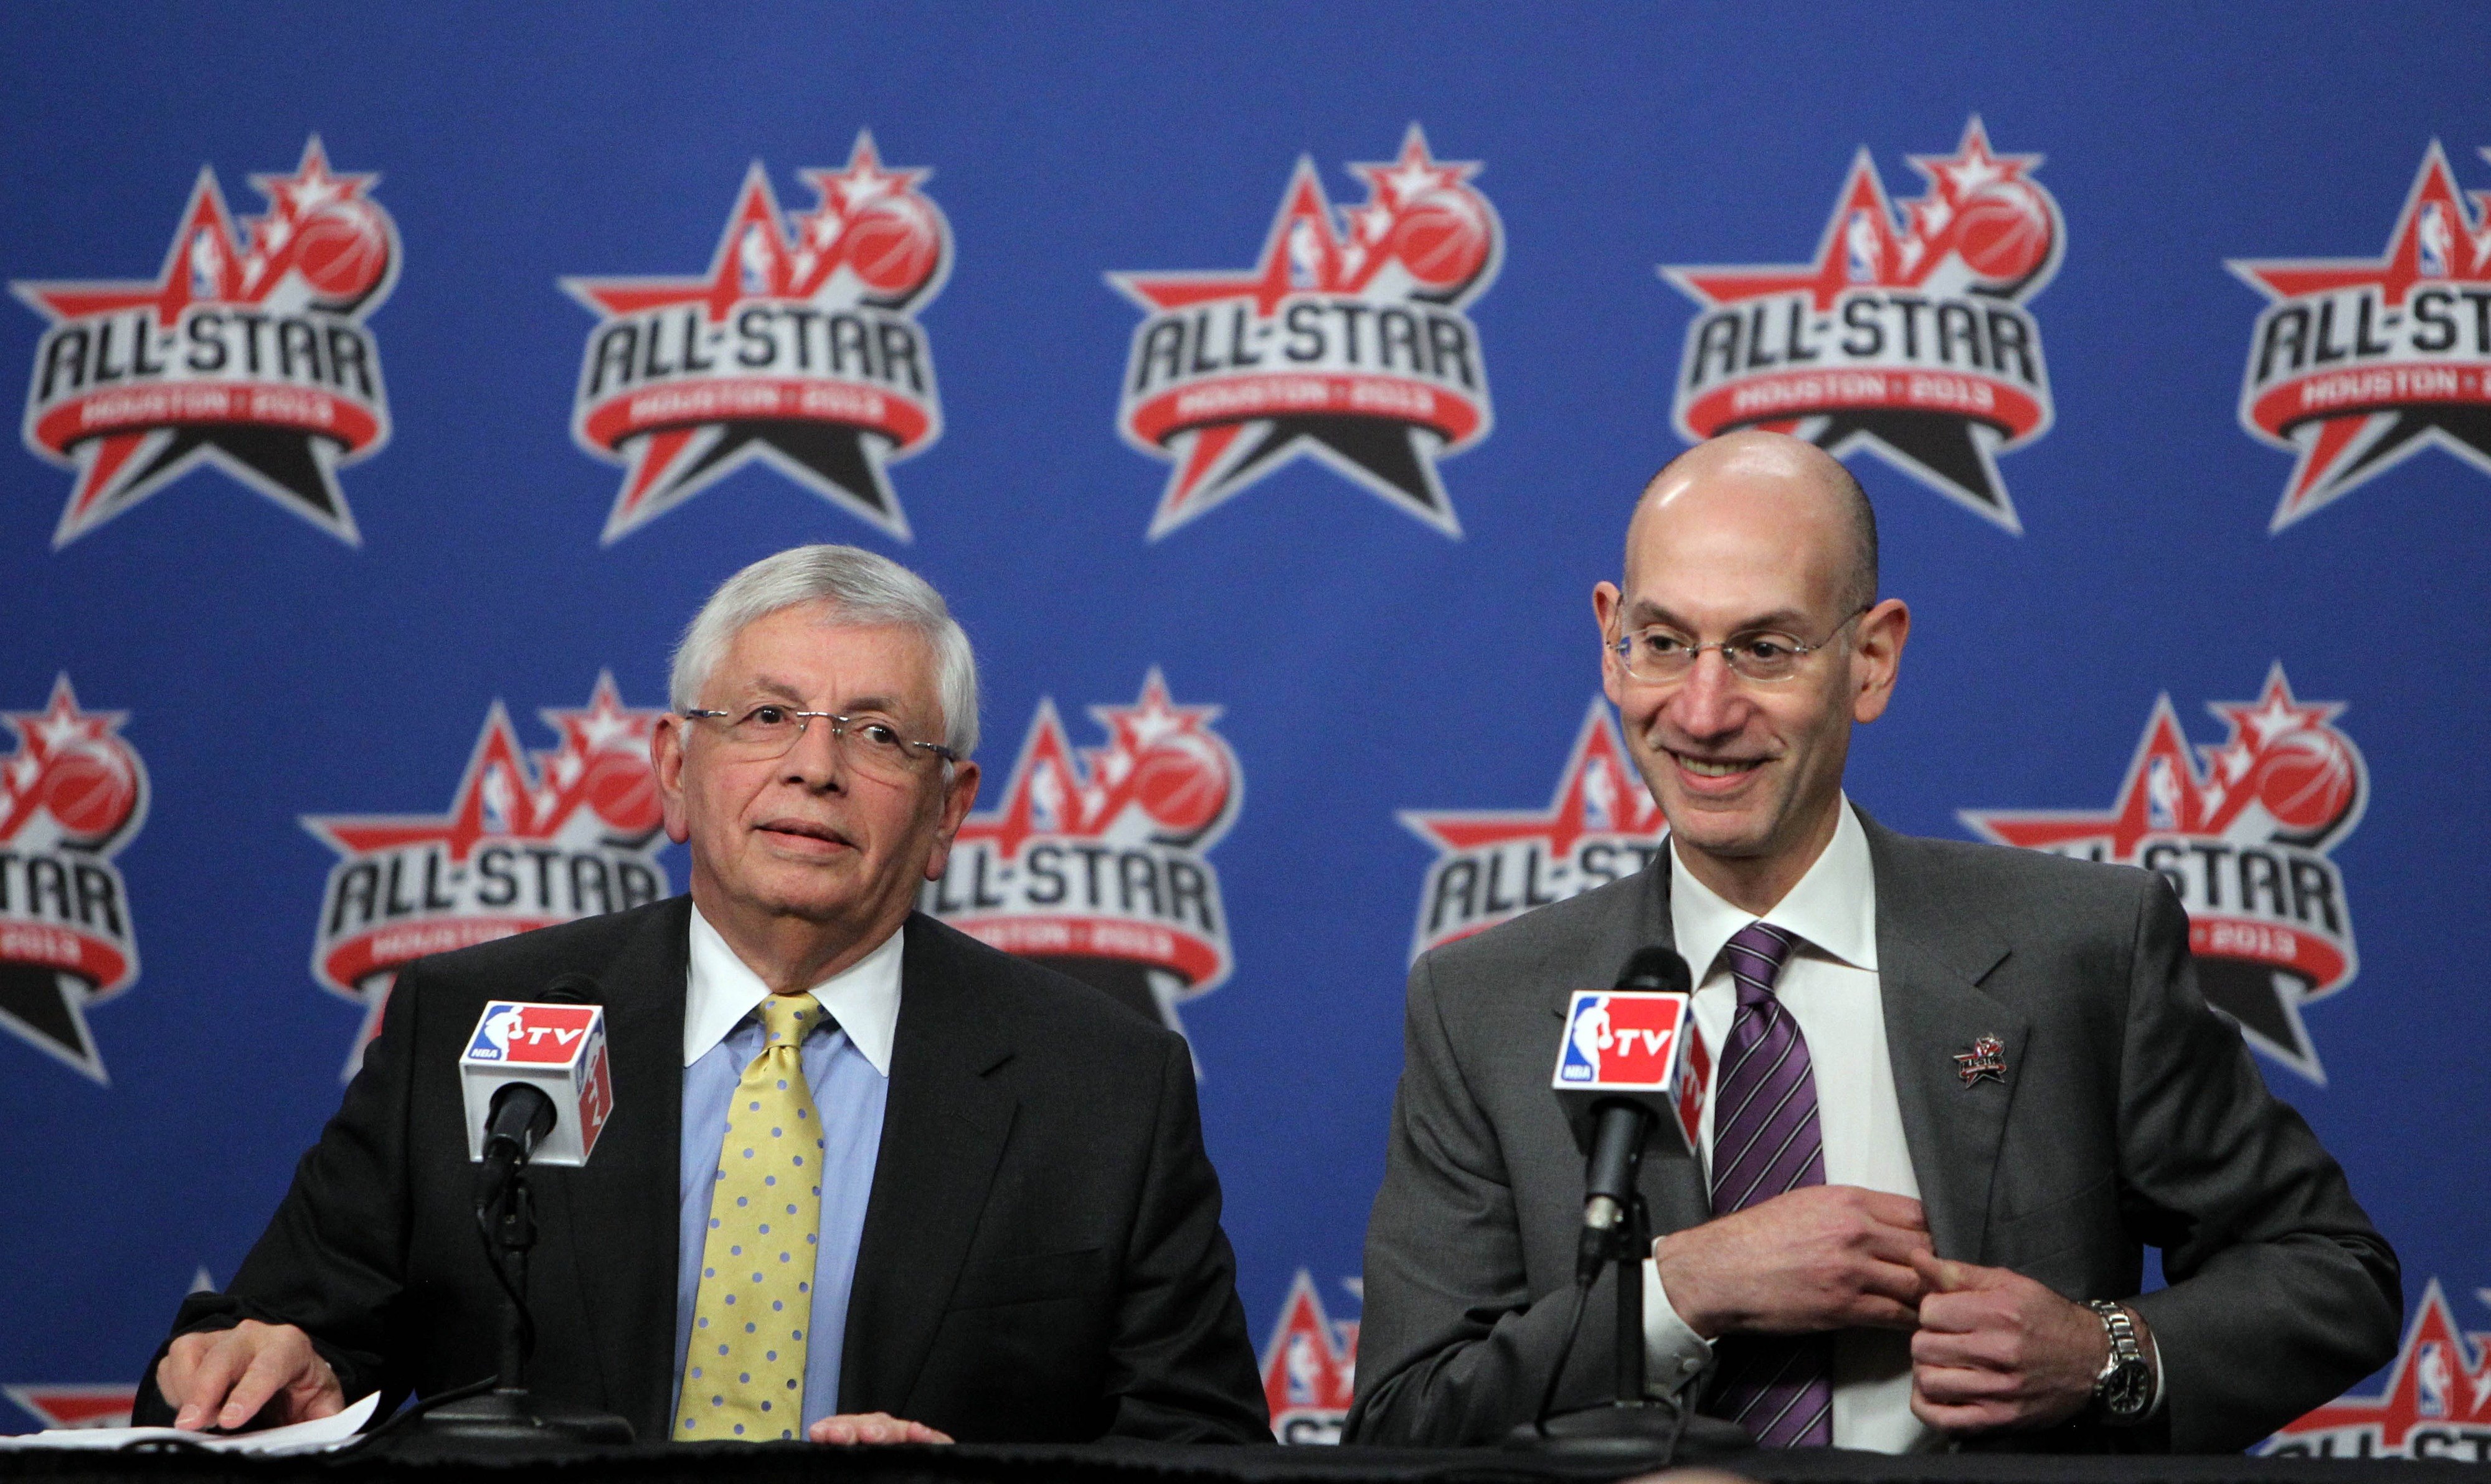 2013-14 NBA salary cap to be $58.5 million, according to report